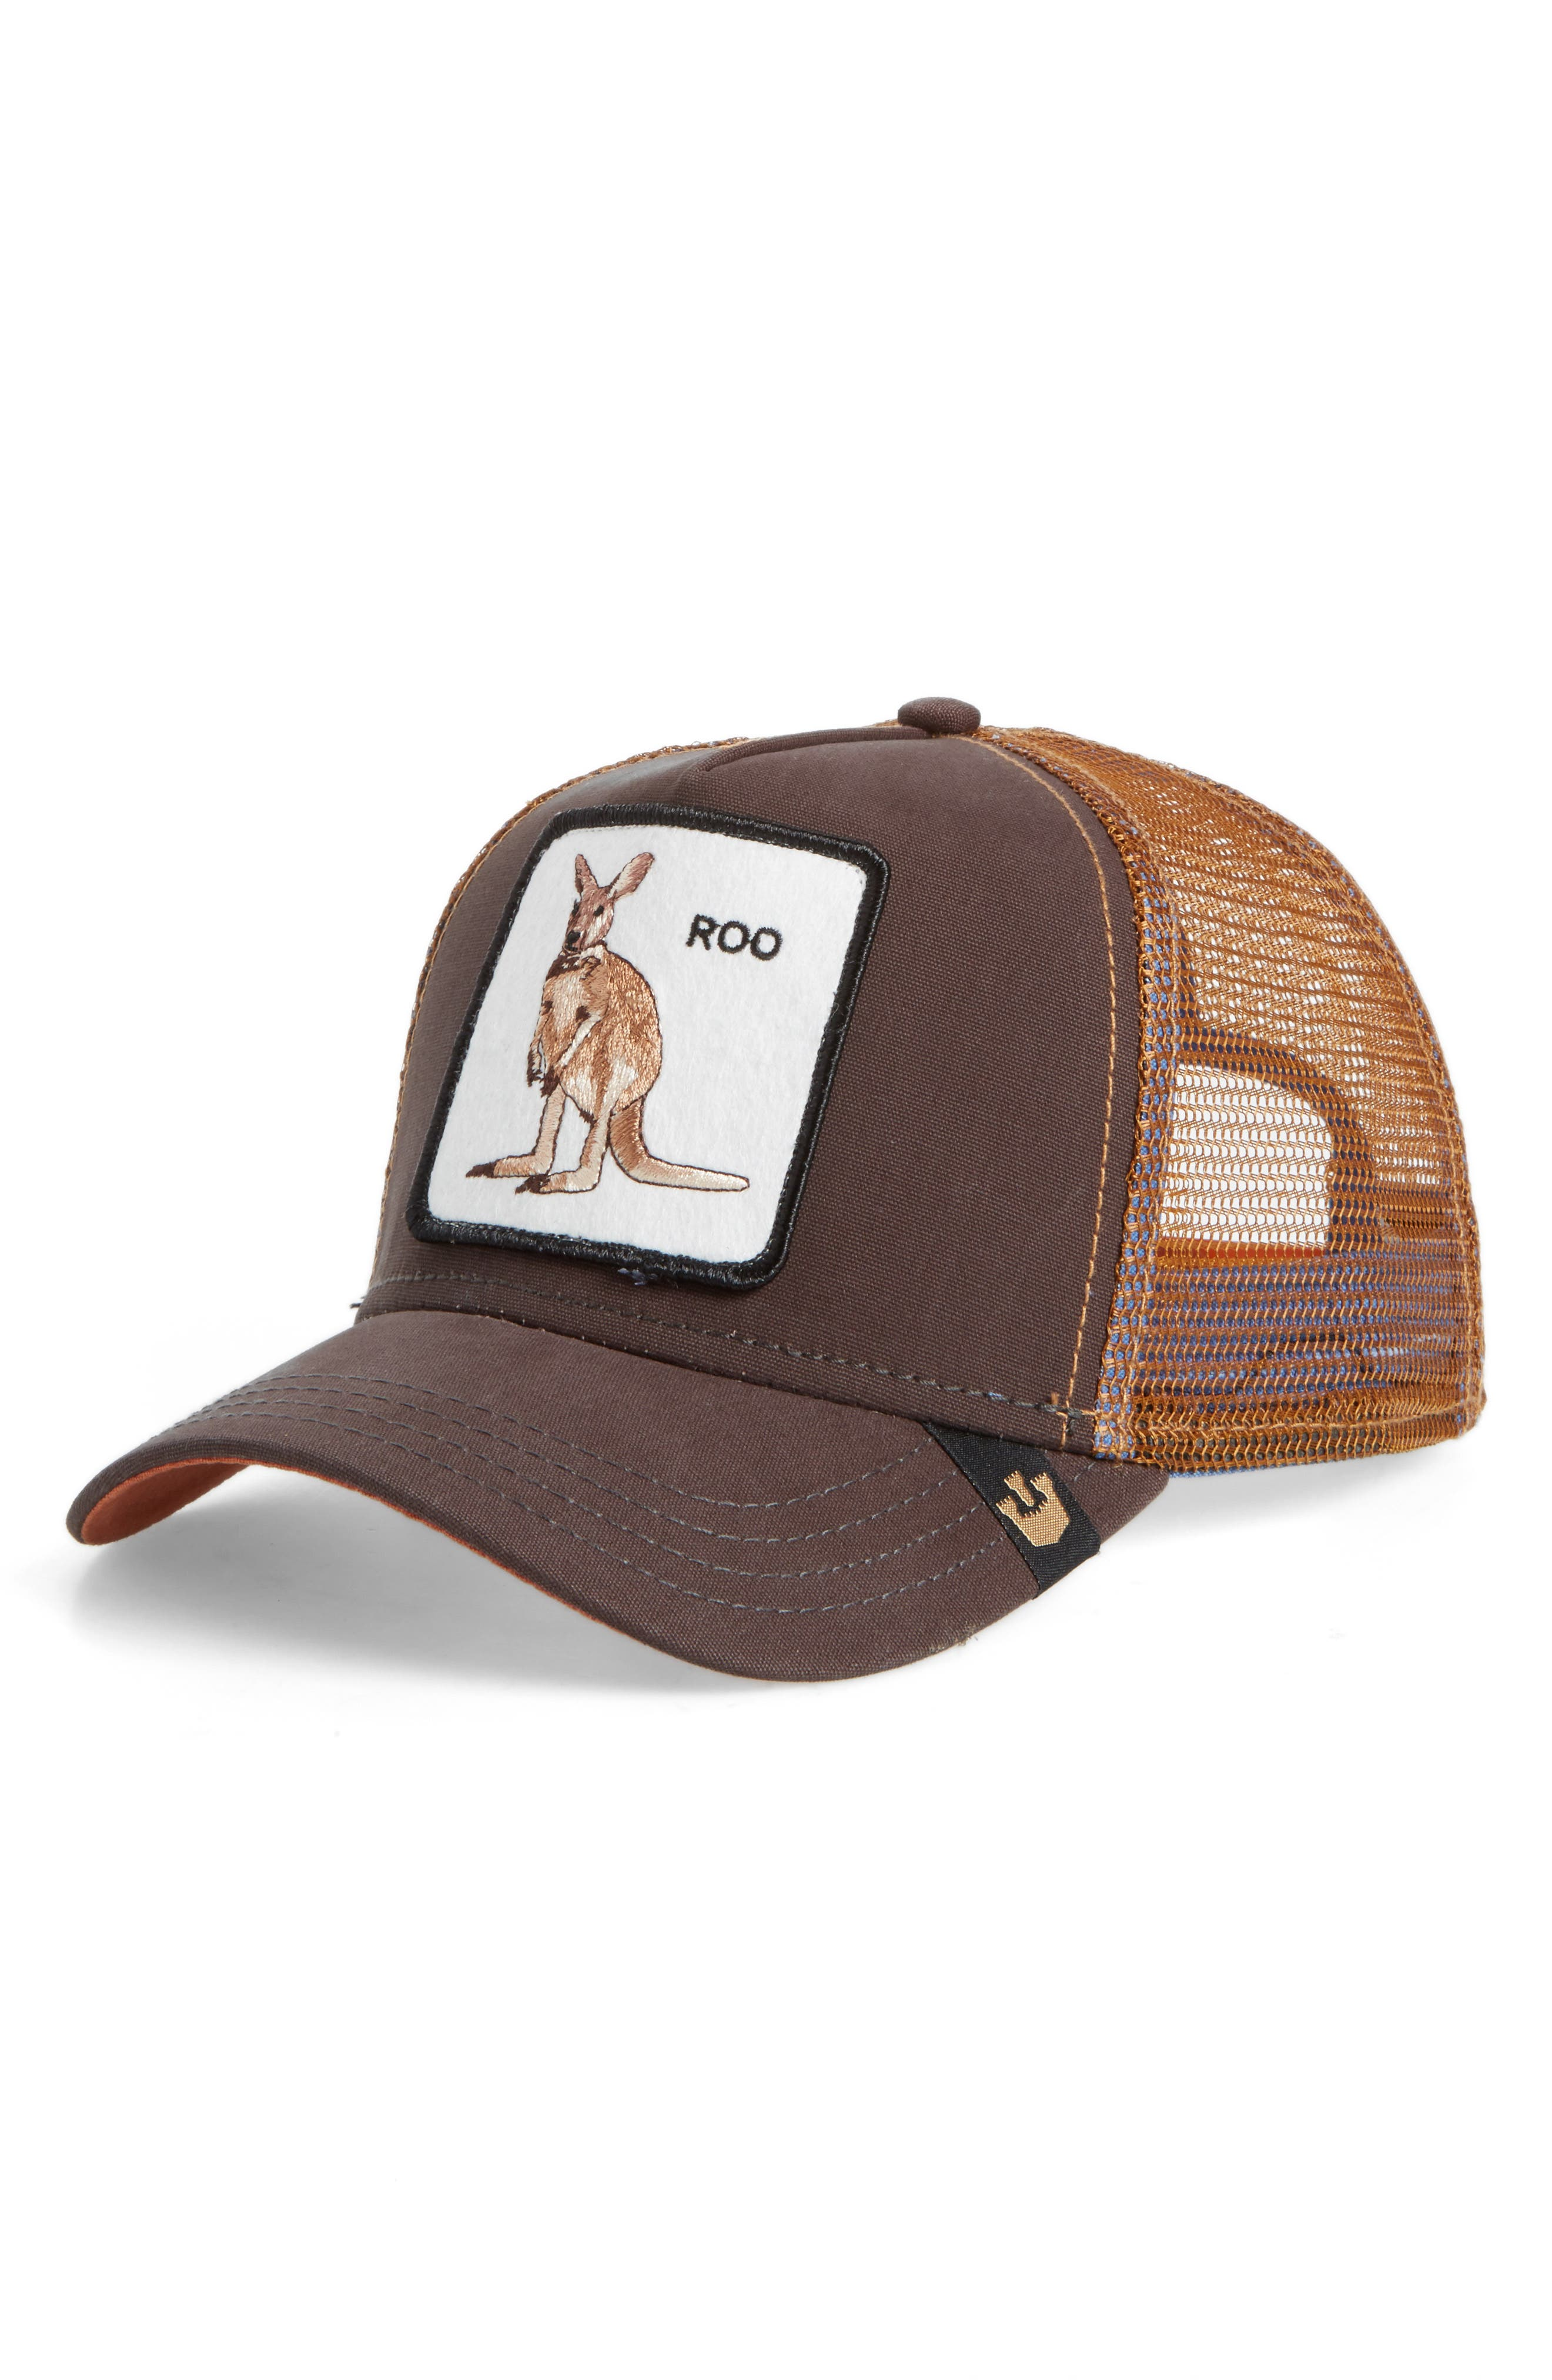 Kangaroo Trucker Hat,                         Main,                         color, 201